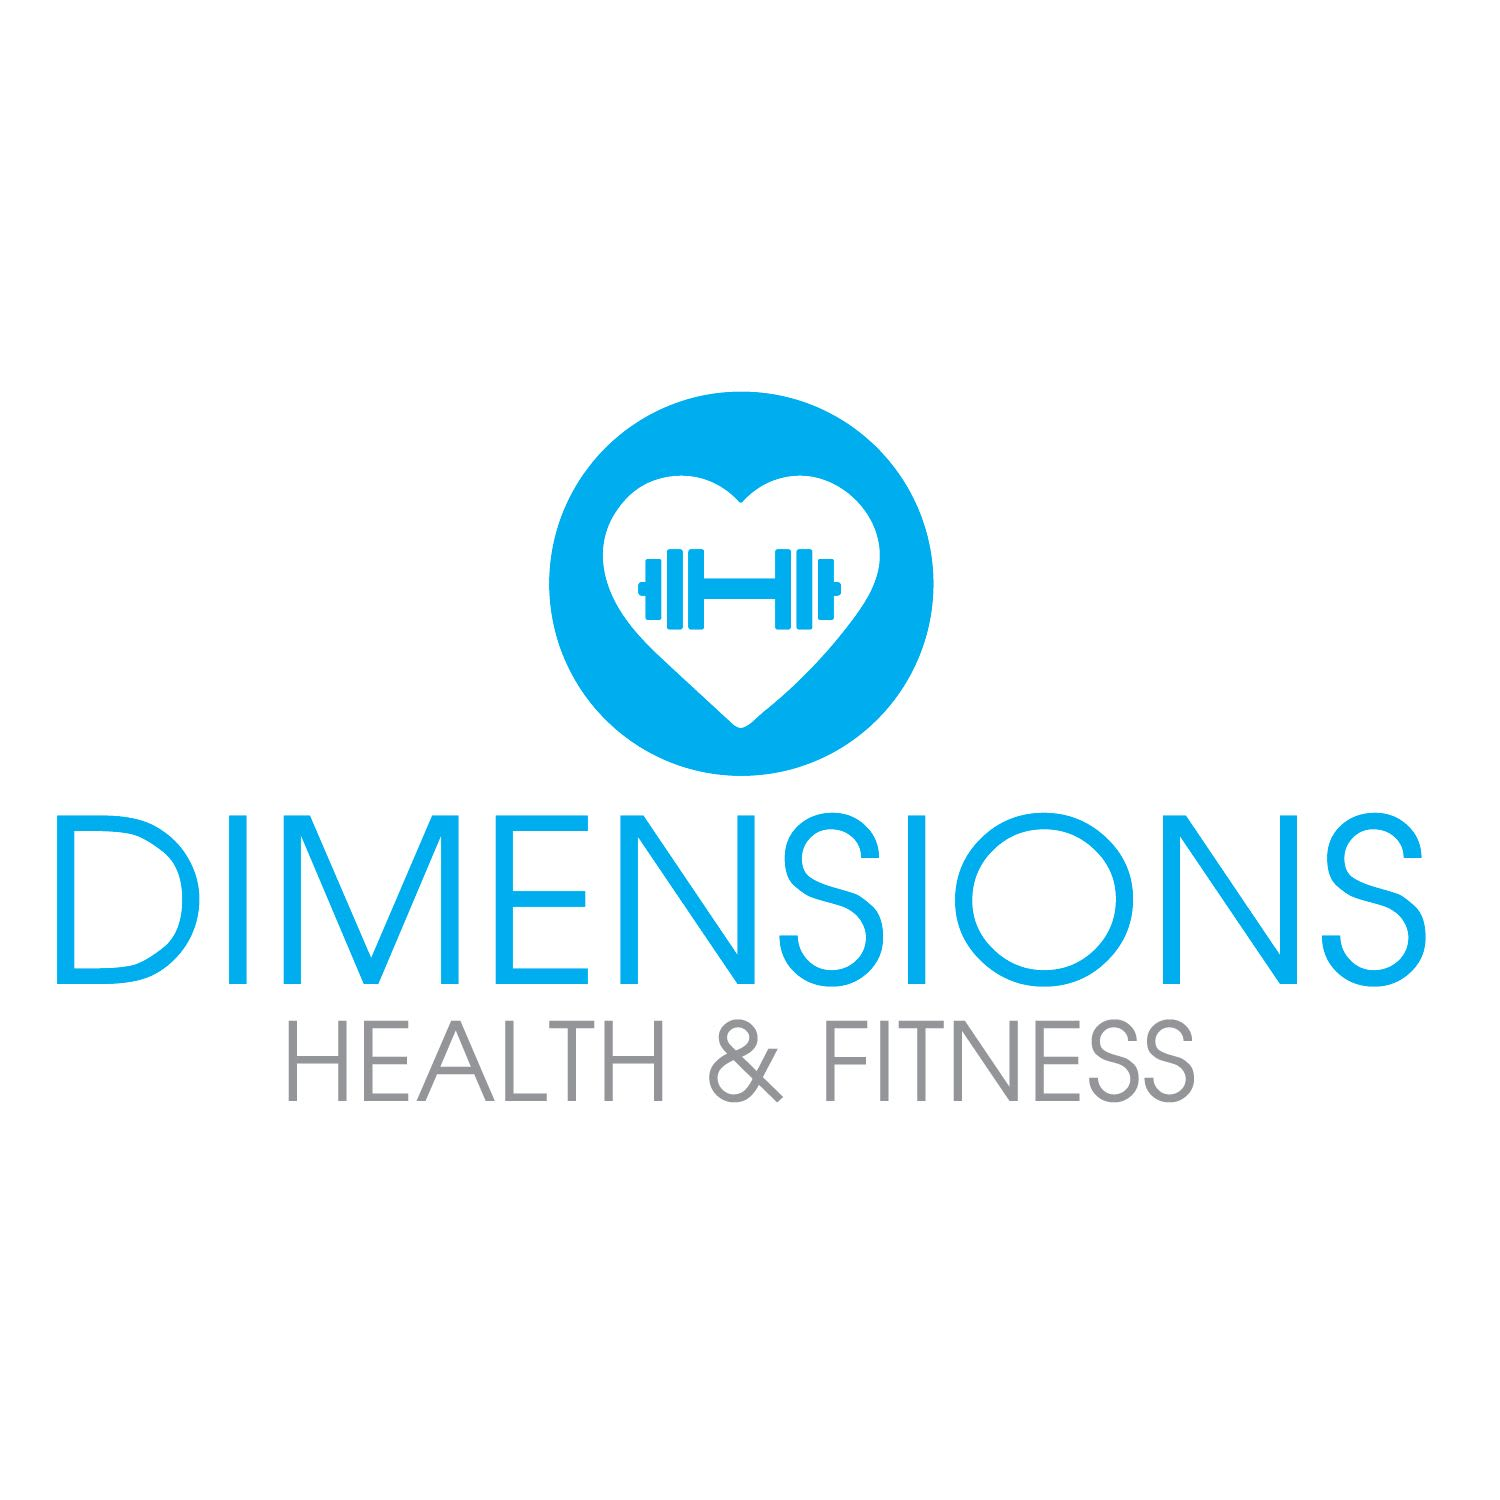 Senior living dimensions wellness program in Columbia